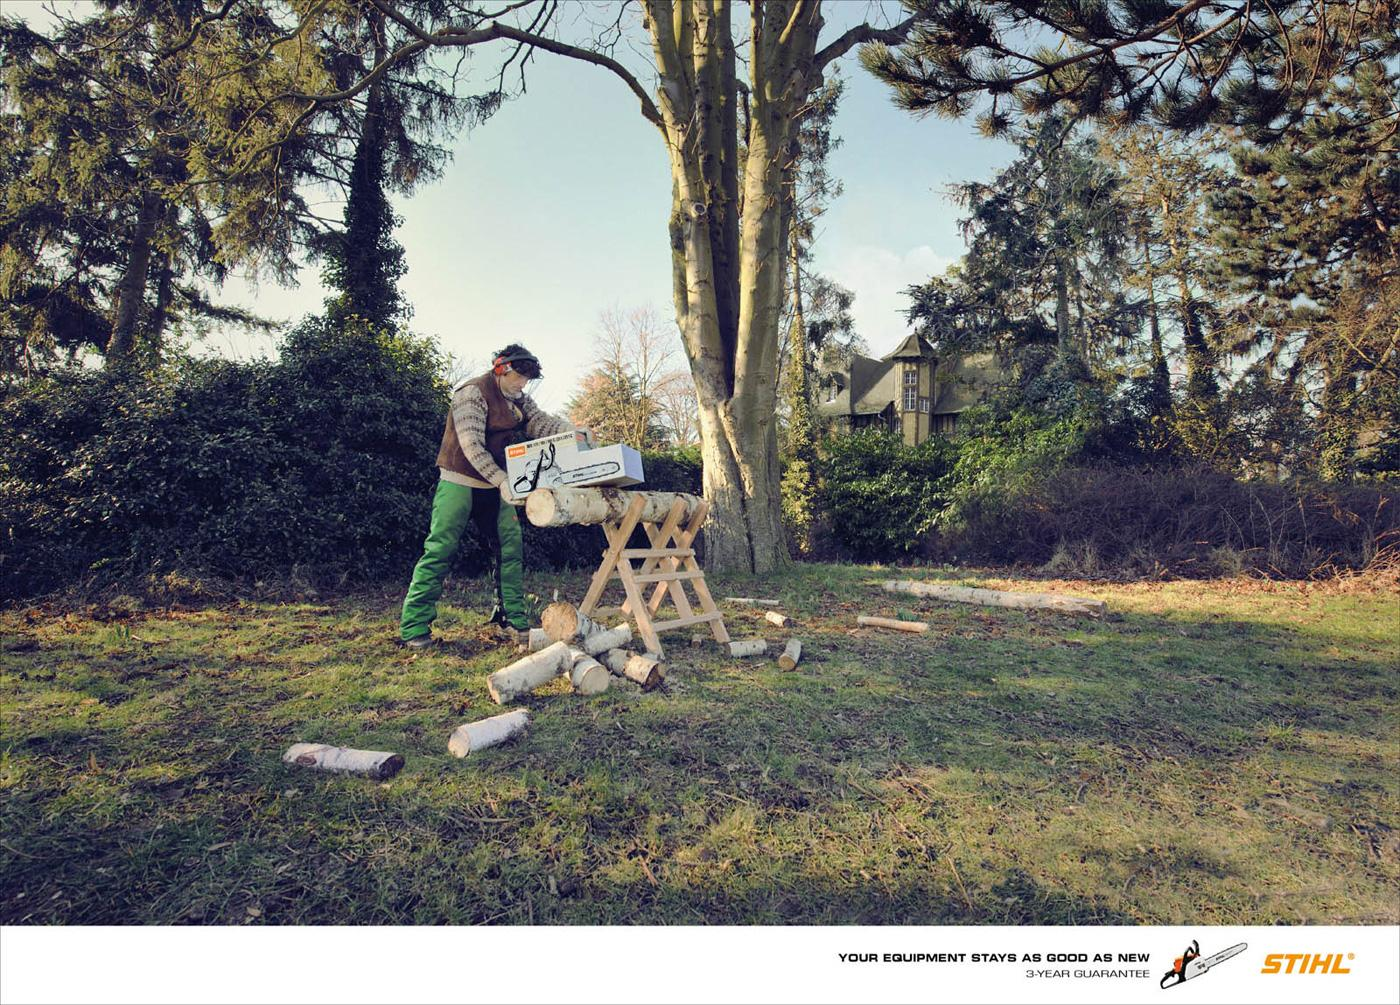 Stihl Print Ad -  As good as new, Chainsaws